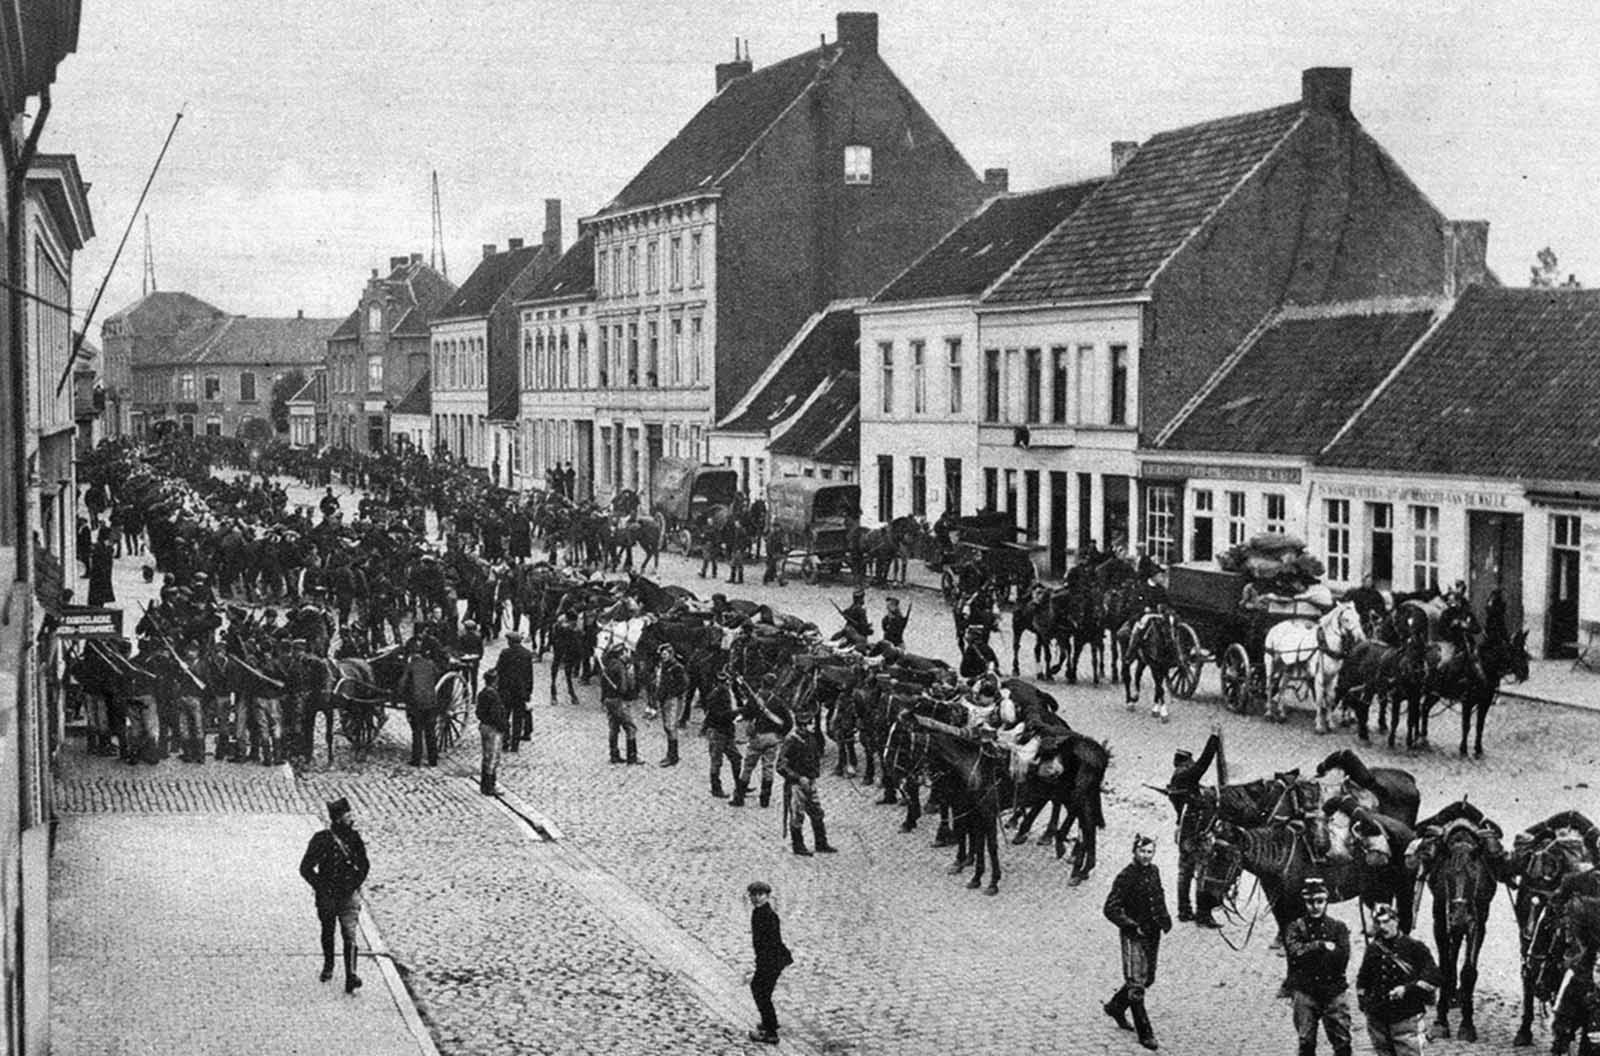 Belgian chasseurs pass through the town of Daynze, Belgium, on the way from Ghent to meet the German invasion.